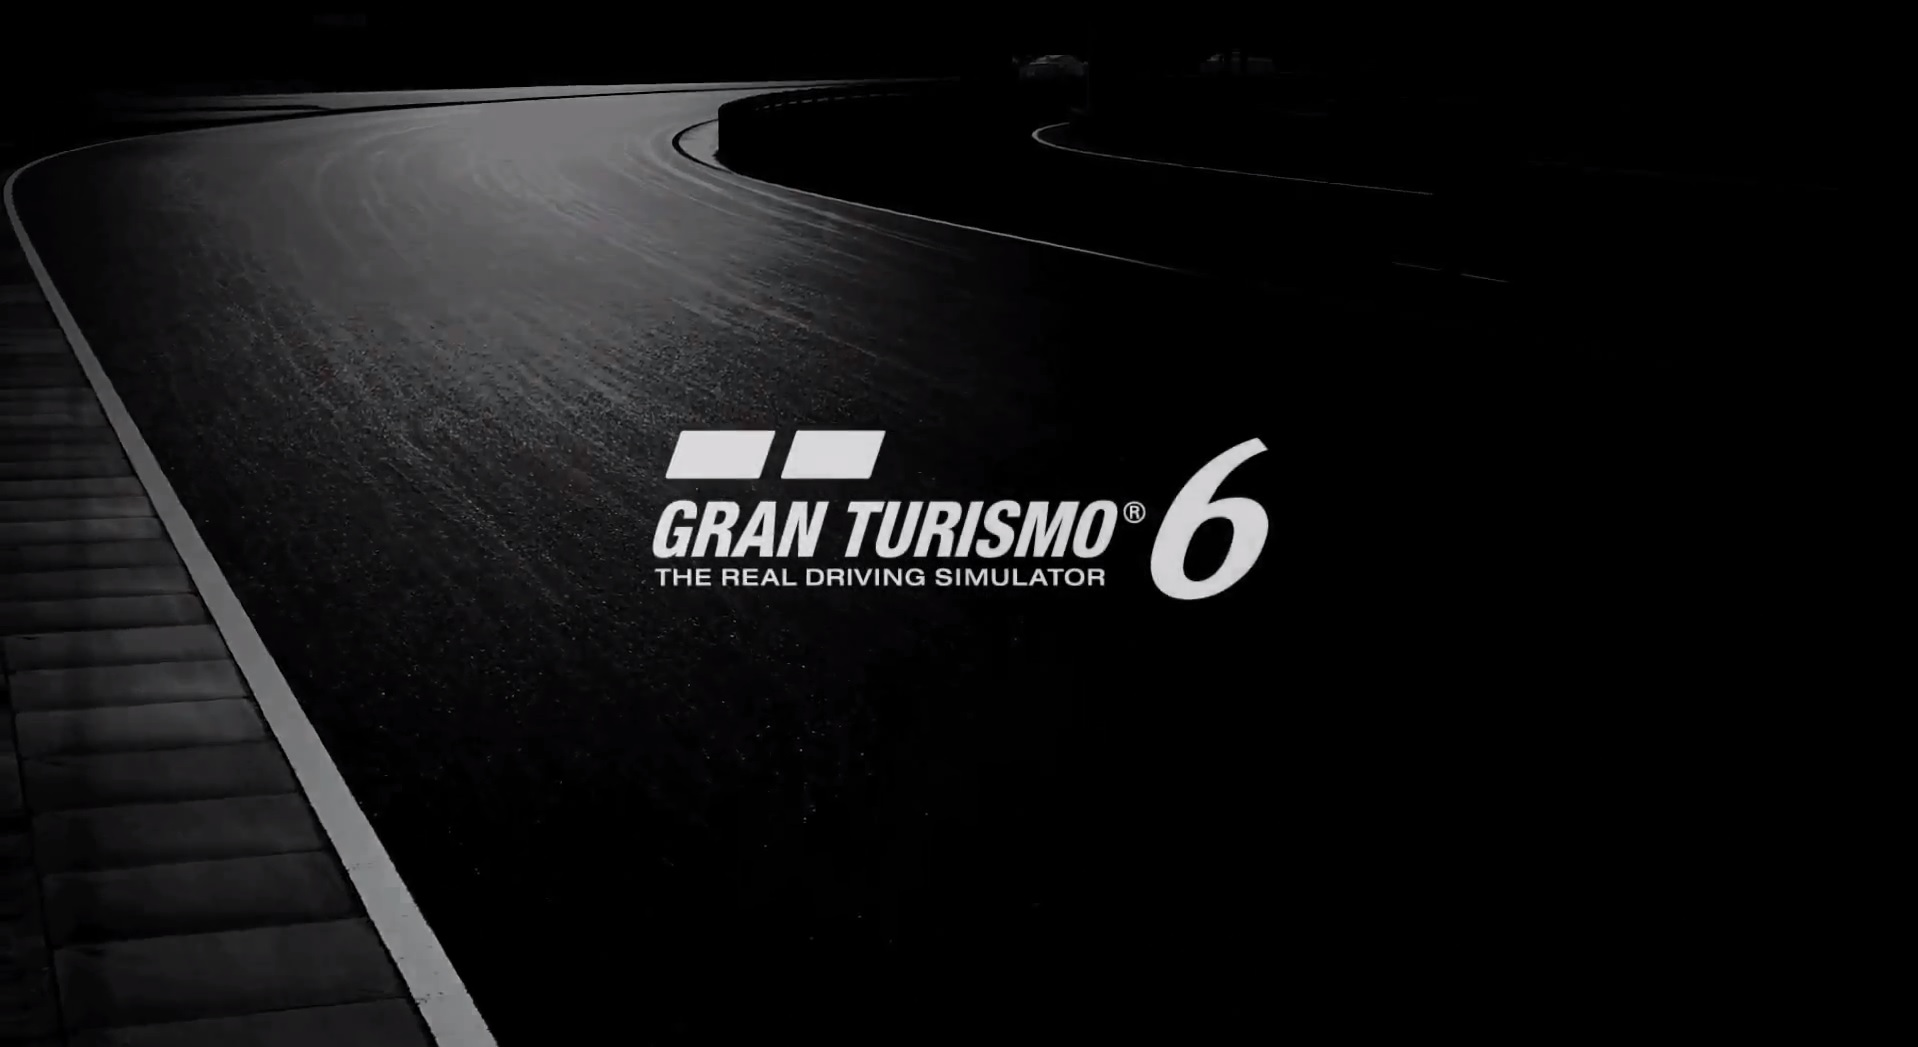 Gran Turismo 6 officially announced for PS3 this year